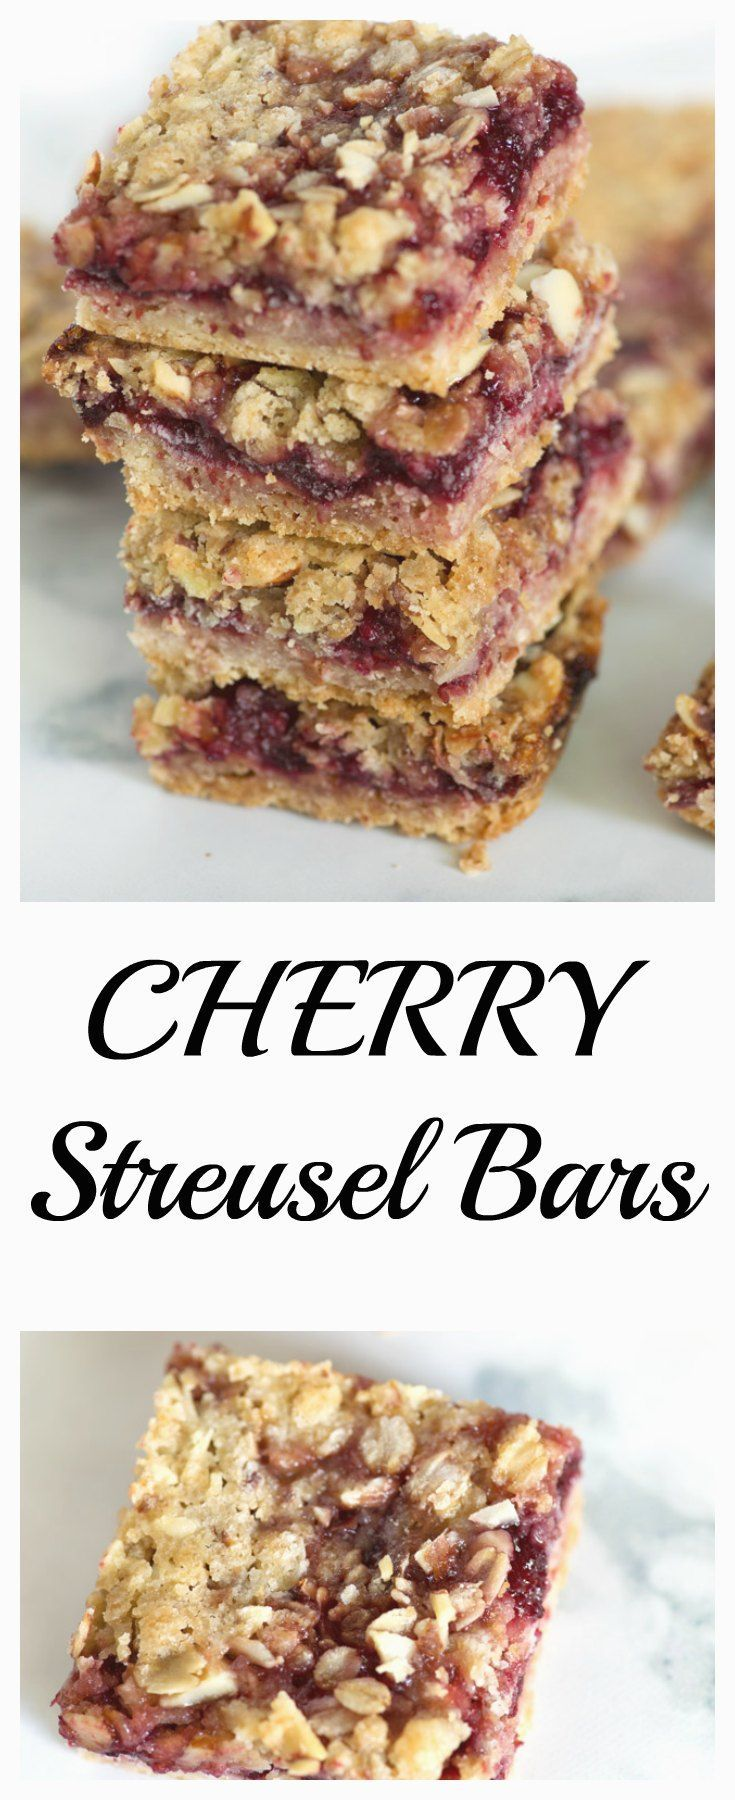 Cherry Streusel Bars are a wonderful way to showcase frozen cherries and they ship well if you want to share with a friend.